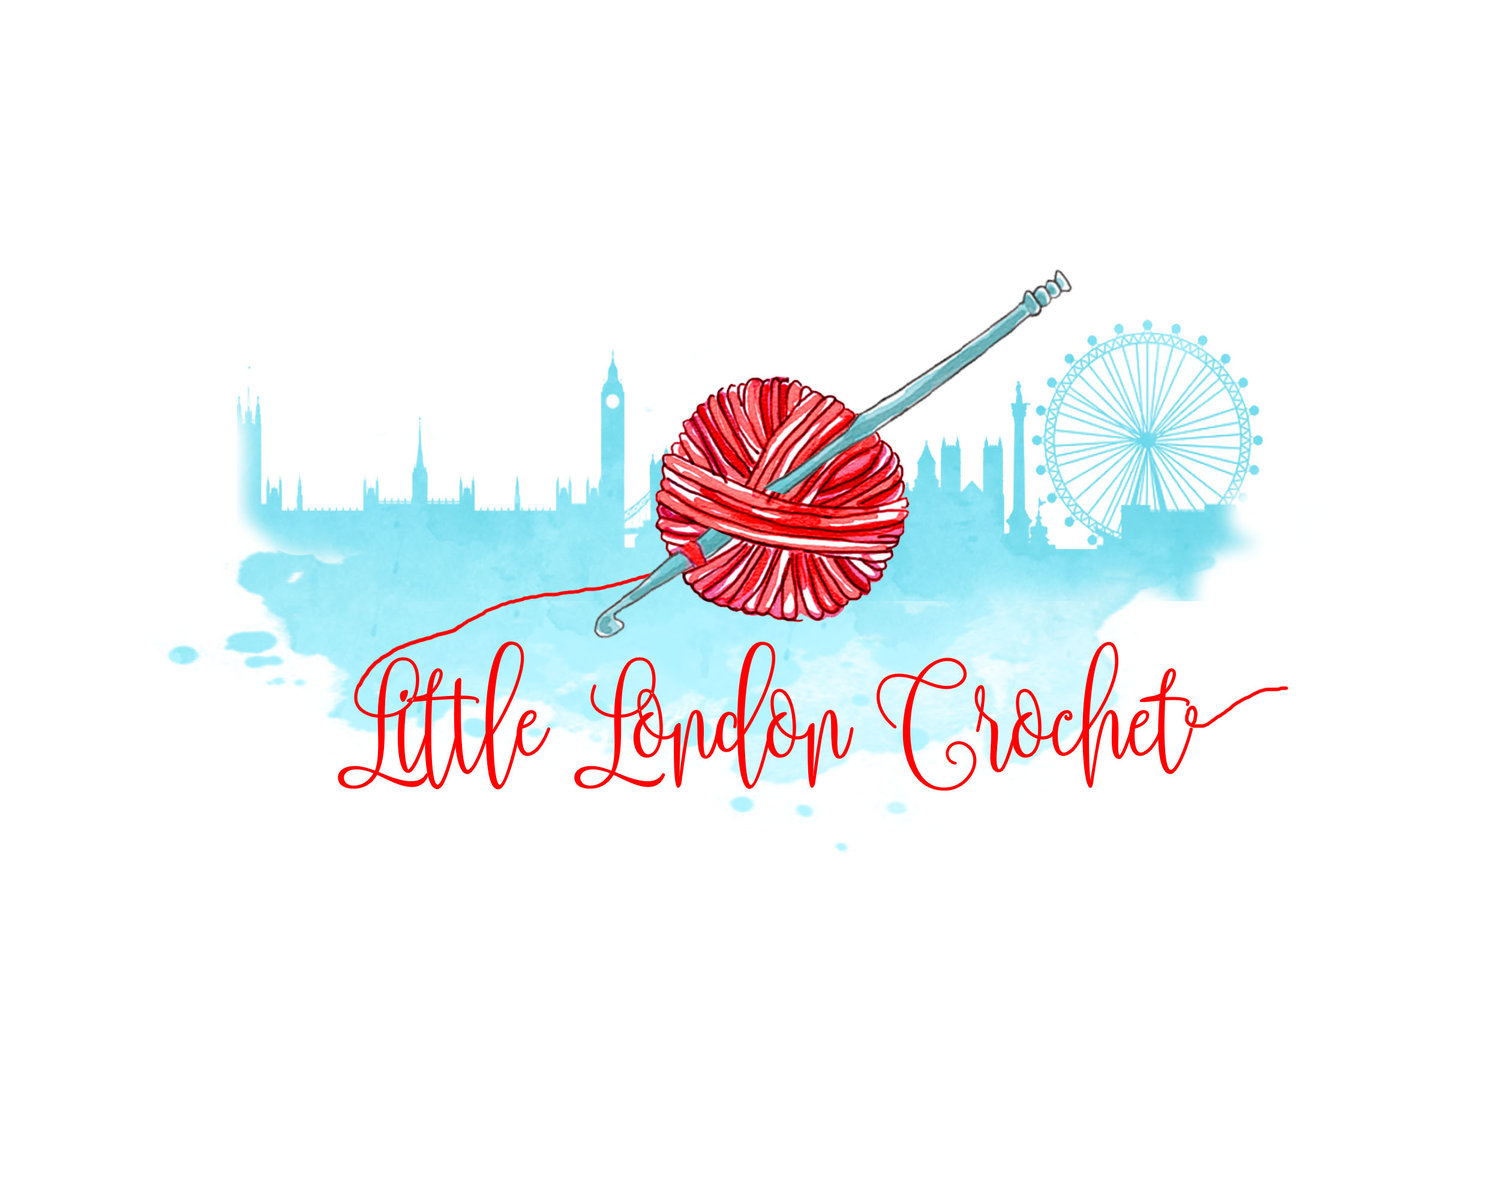 Little London Crochet